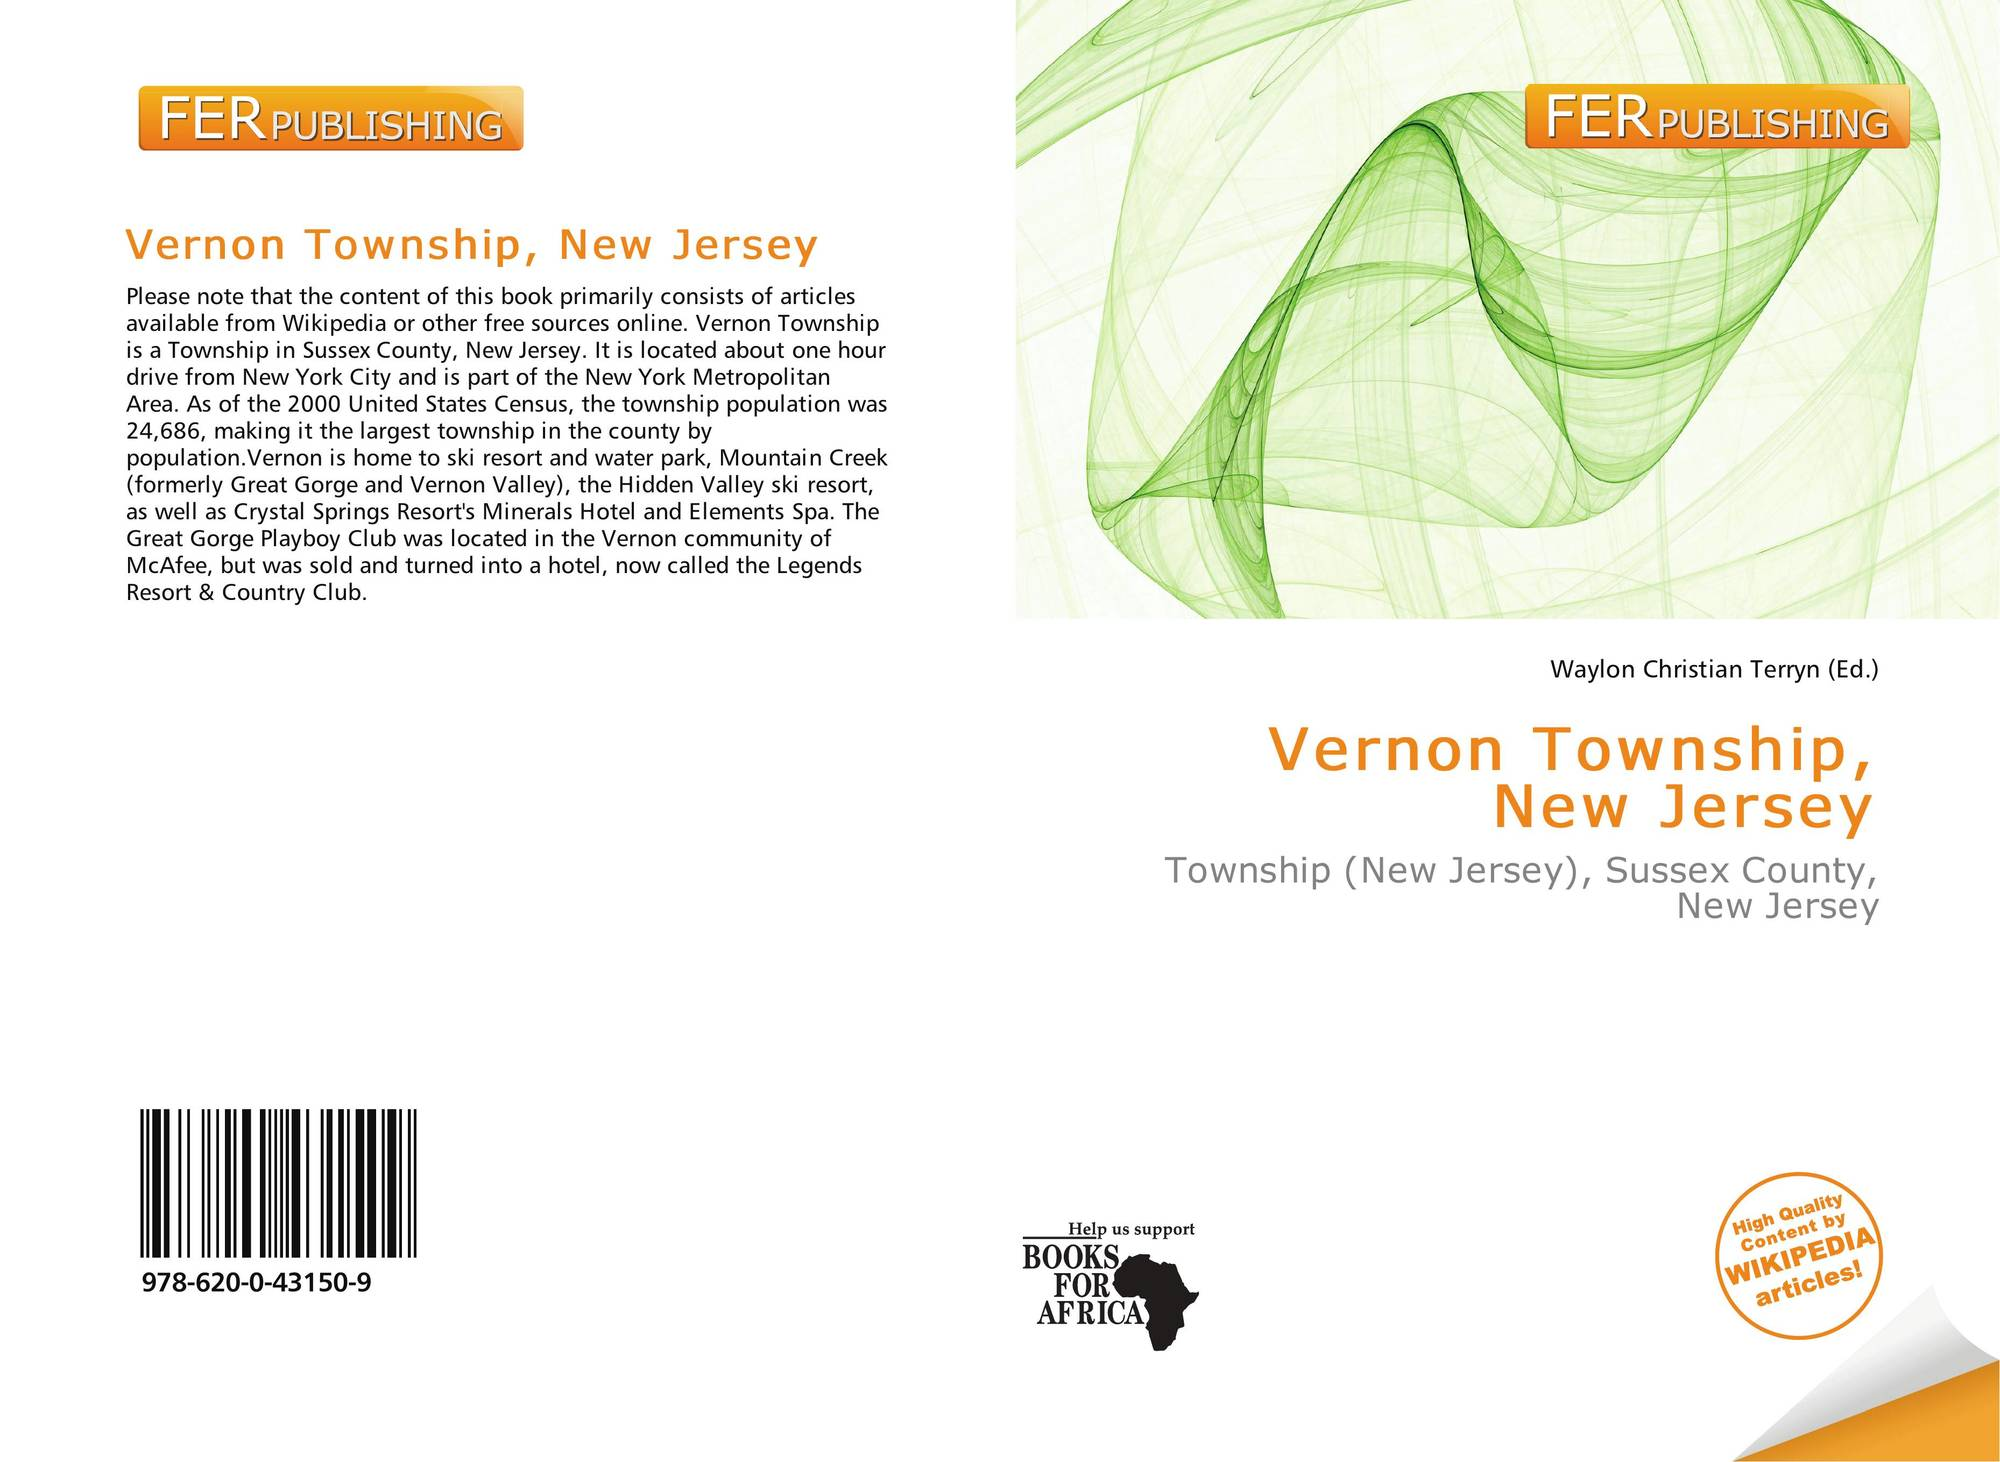 New jersey sussex county vernon - Bookcover Of Vernon Township New Jersey